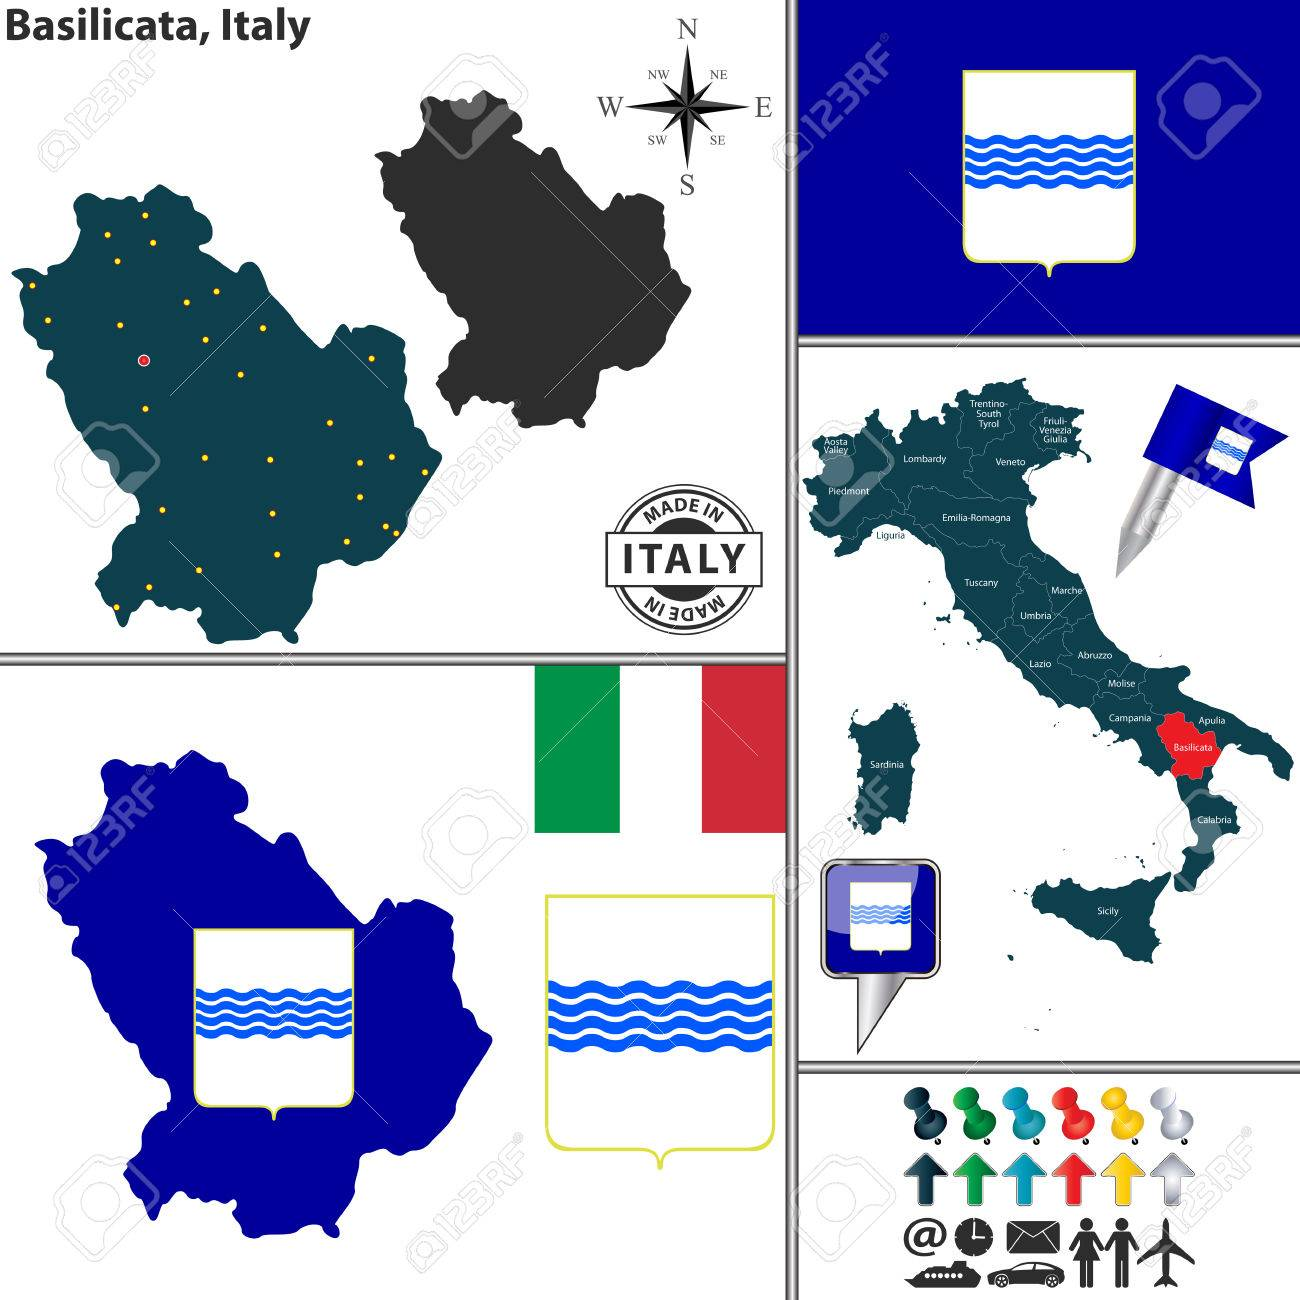 Vector Map Of Region Basilicata With Coat Of Arms And Location On